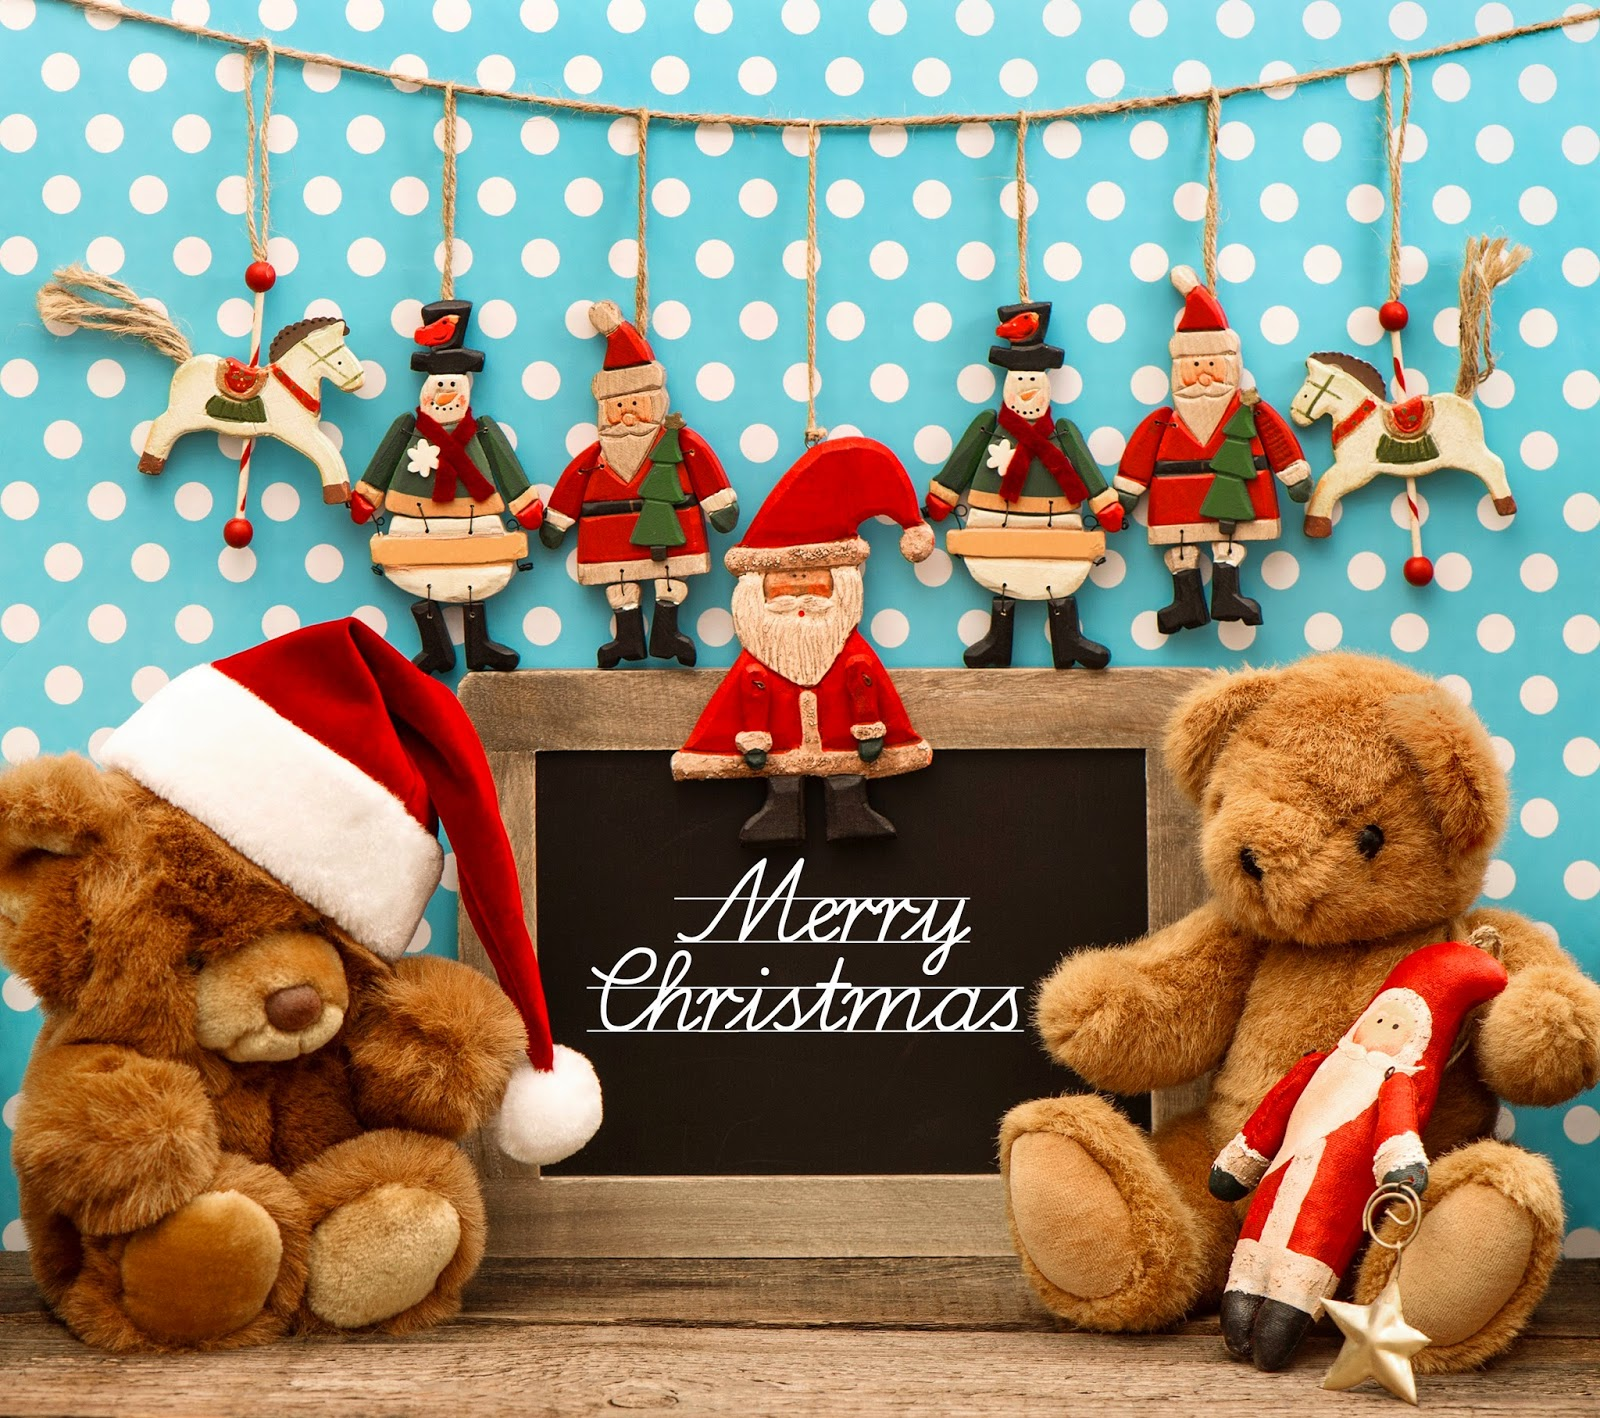 Christmas-Teddy-bear-with-santa-hat-toys-in-background-image-for-kids-6498x5758.jpg